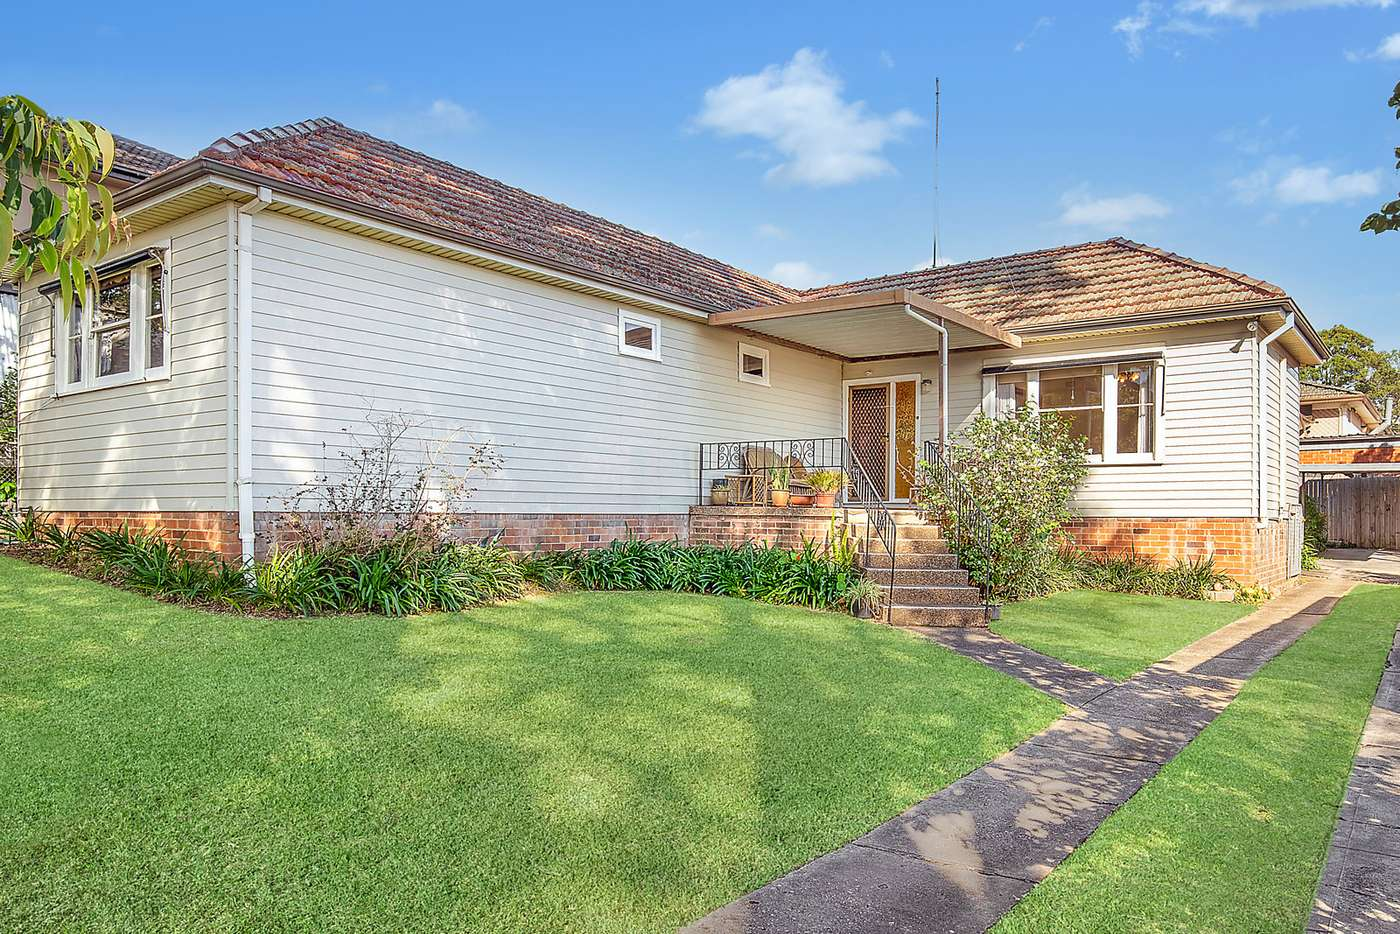 Main view of Homely house listing, 5 Clarke Street, West Ryde NSW 2114